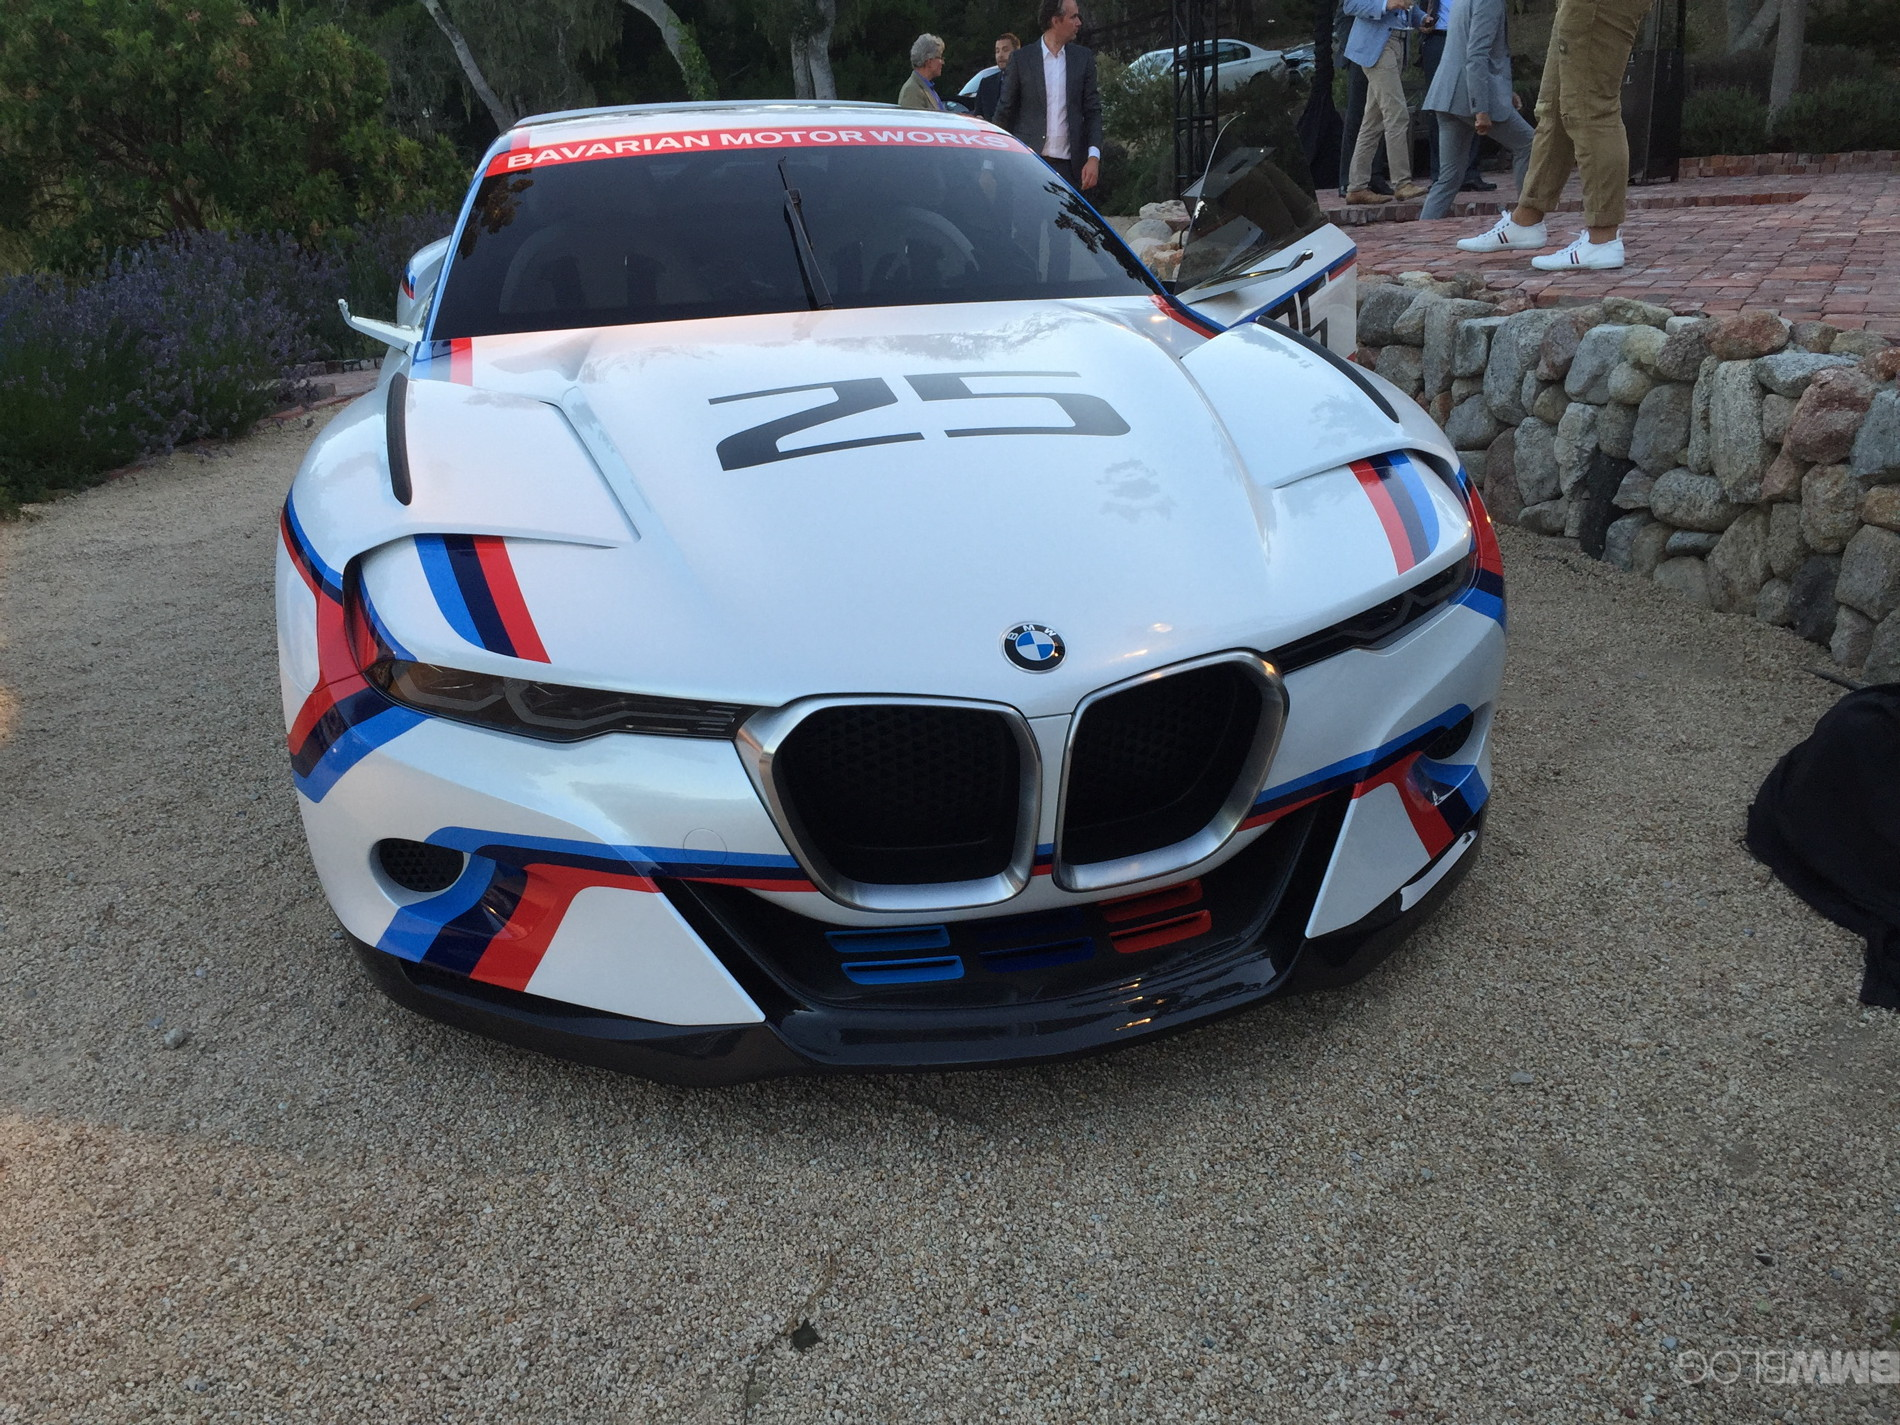 BMW 3.0 CSL Hommage Racing 1900x1200 images 05 e1439539100107